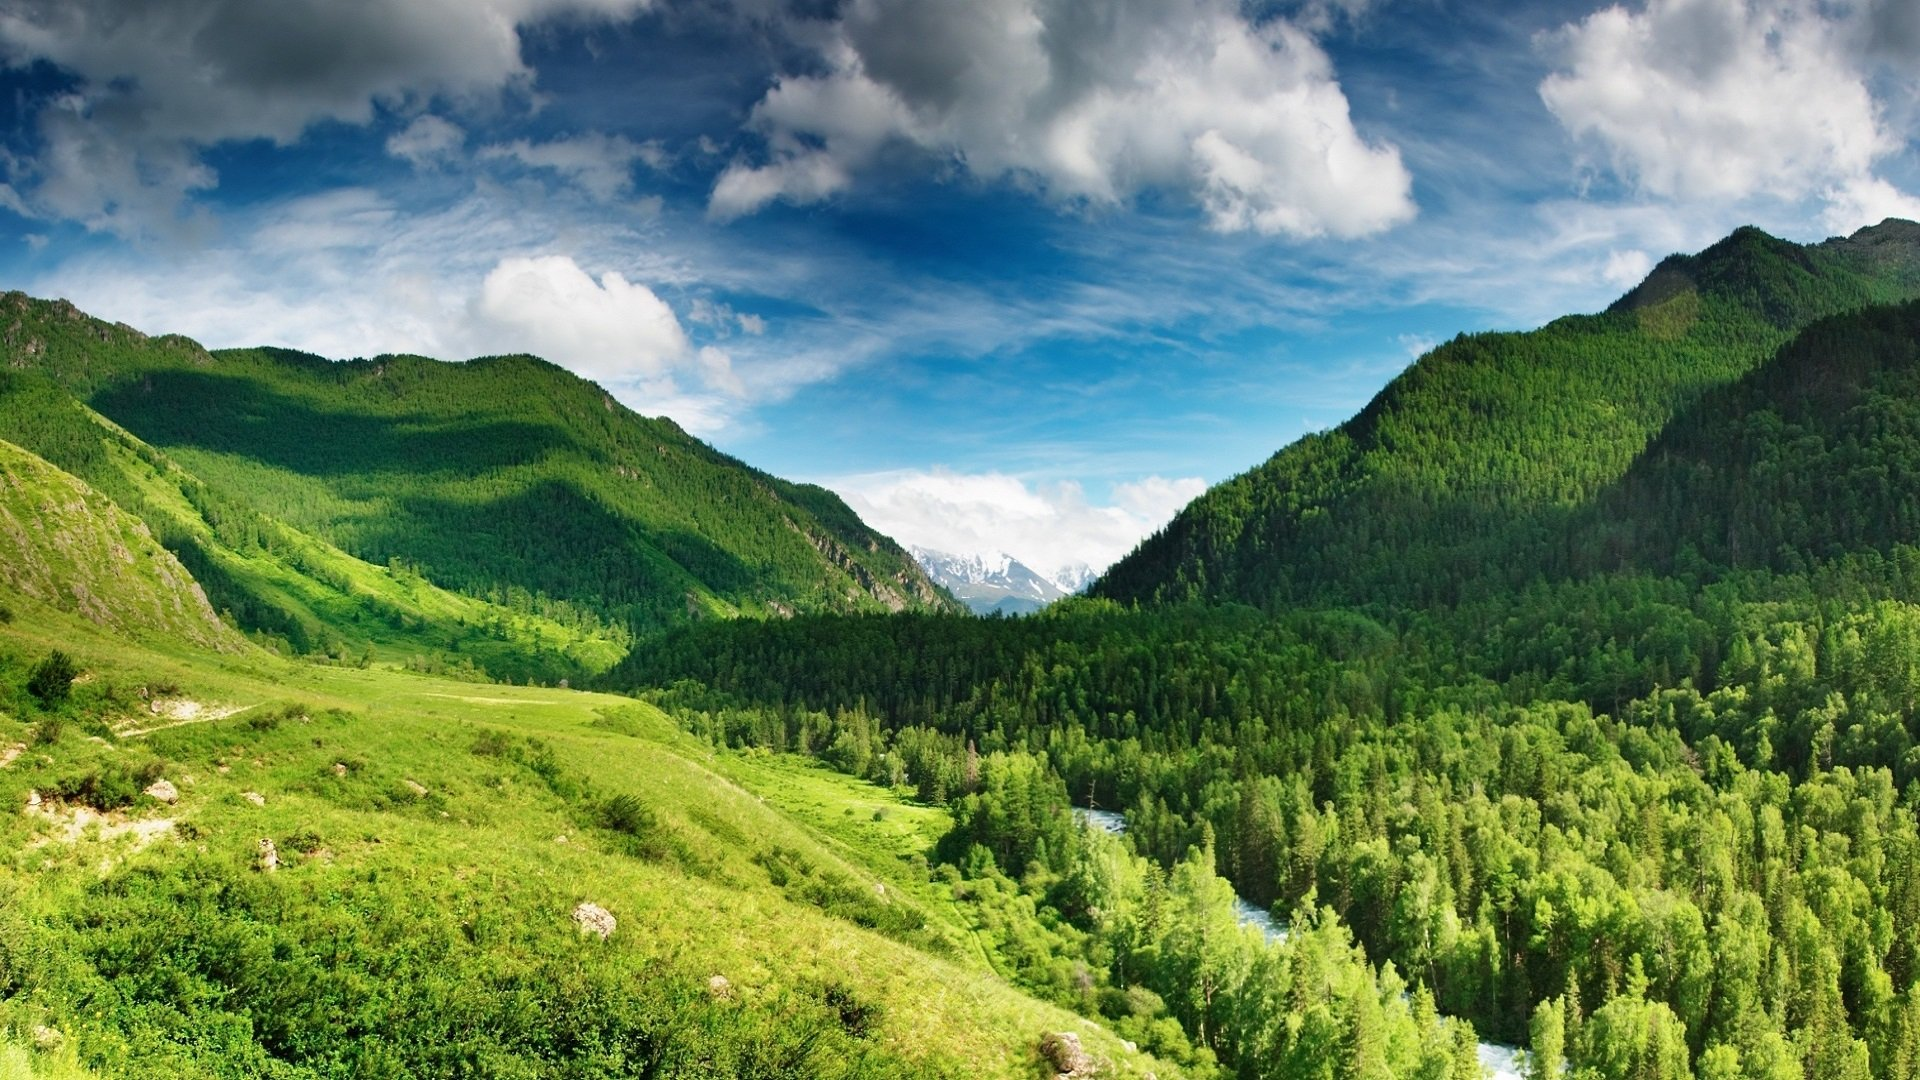 Green Mountains Wallpapers Hd Wallpapers 1920x1080